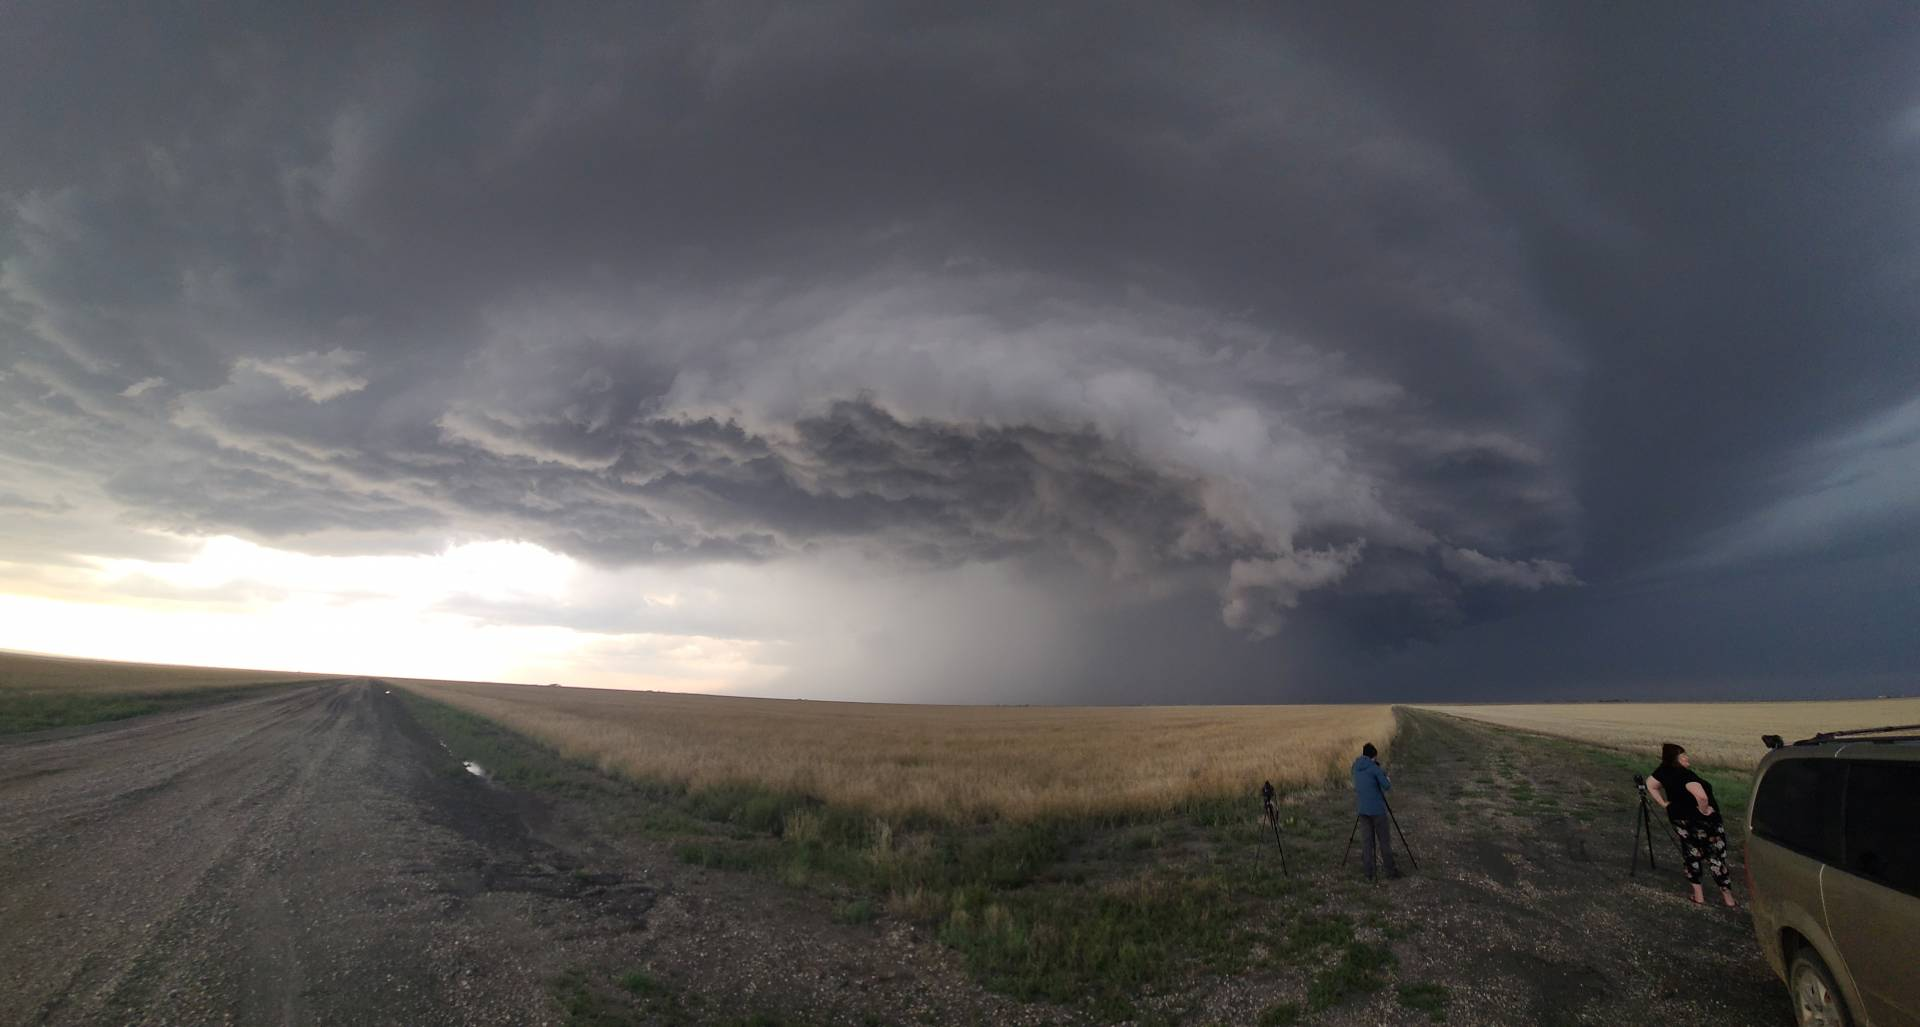 Absolutely gorgeous supercell near Pitman, SK right now 6:35pm #skstorm